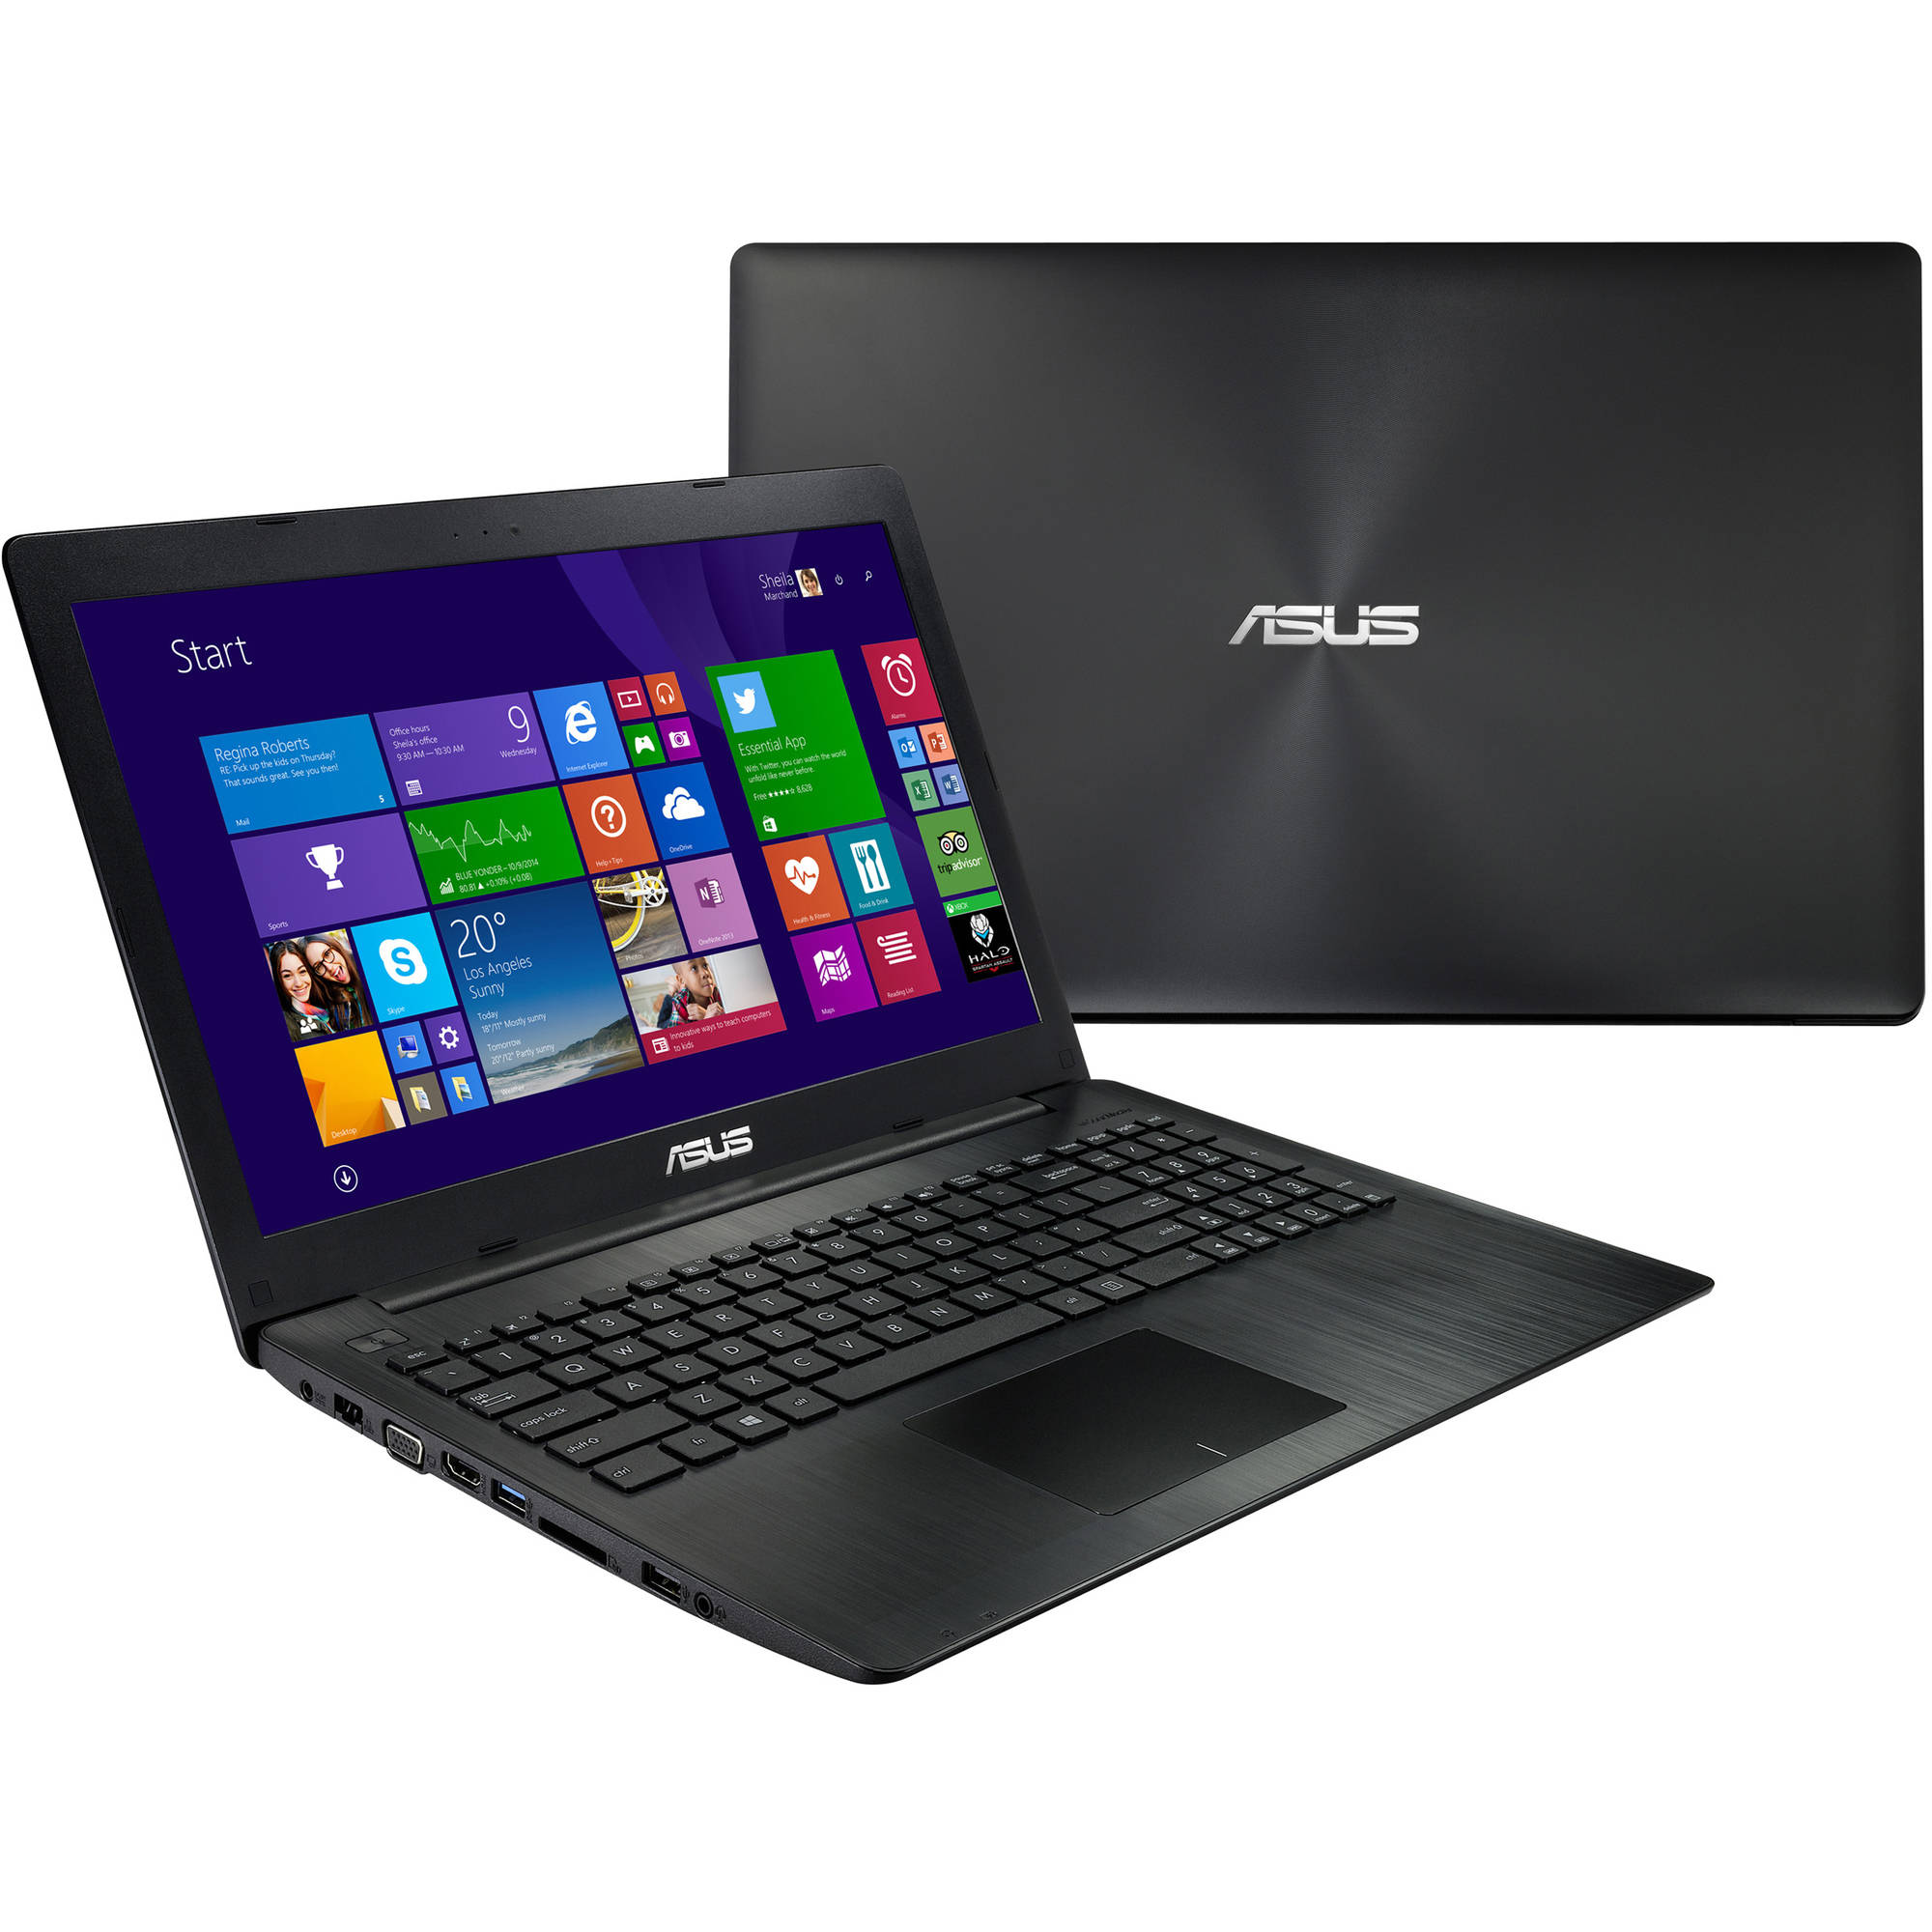 "ASUS Black 15.6"" K553MA-DB01TQ Laptop PC with Intel BayTrail-M N2930 Quad-Core Processor, 4GB Memory, touch screen, 500GB Hard Drive and Windows 8.1   (Free Windows 10 Upgrade before July 29, 2016)"